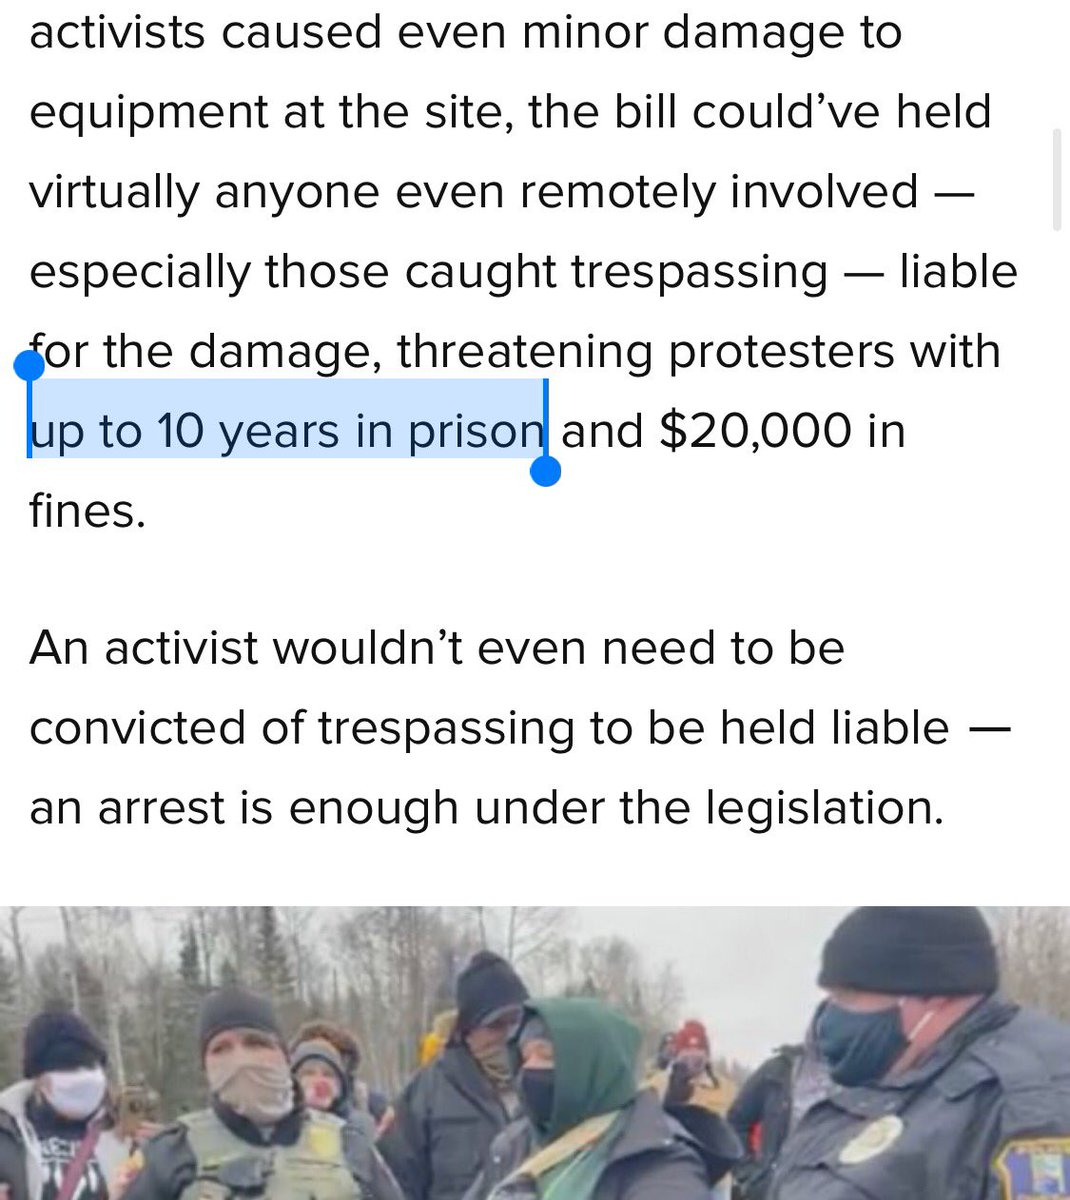 """In the U.S., the oil industry is exploiting the Capitol riots to push draconian 10-year prison sentences for protesters who target oil production sites.  """"Shock Doctrine"""" in action. @NaomiAKlein https://t.co/ag3YRNbQOJ"""